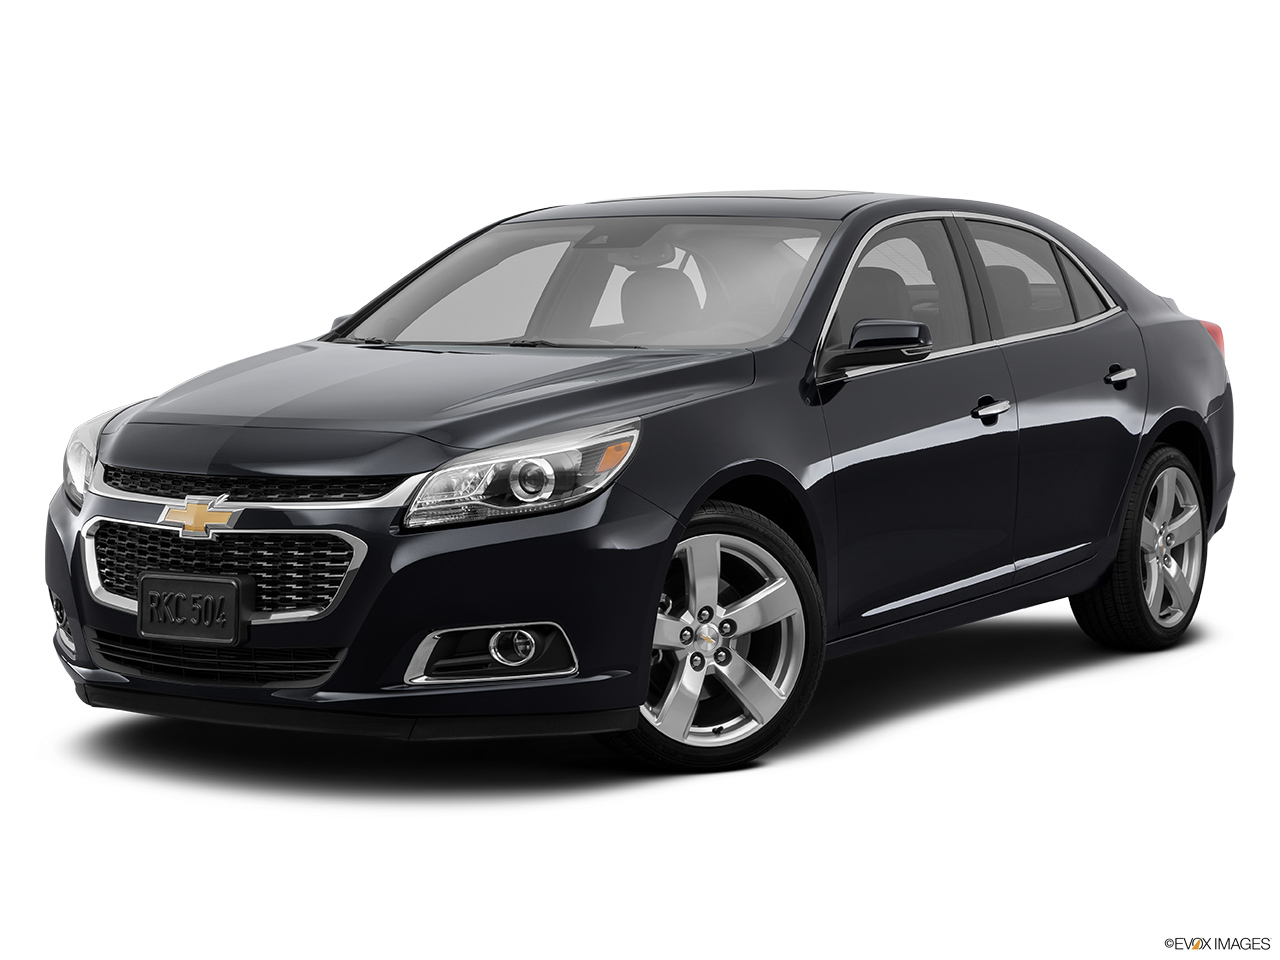 2014 chevrolet malibu. Black Bedroom Furniture Sets. Home Design Ideas